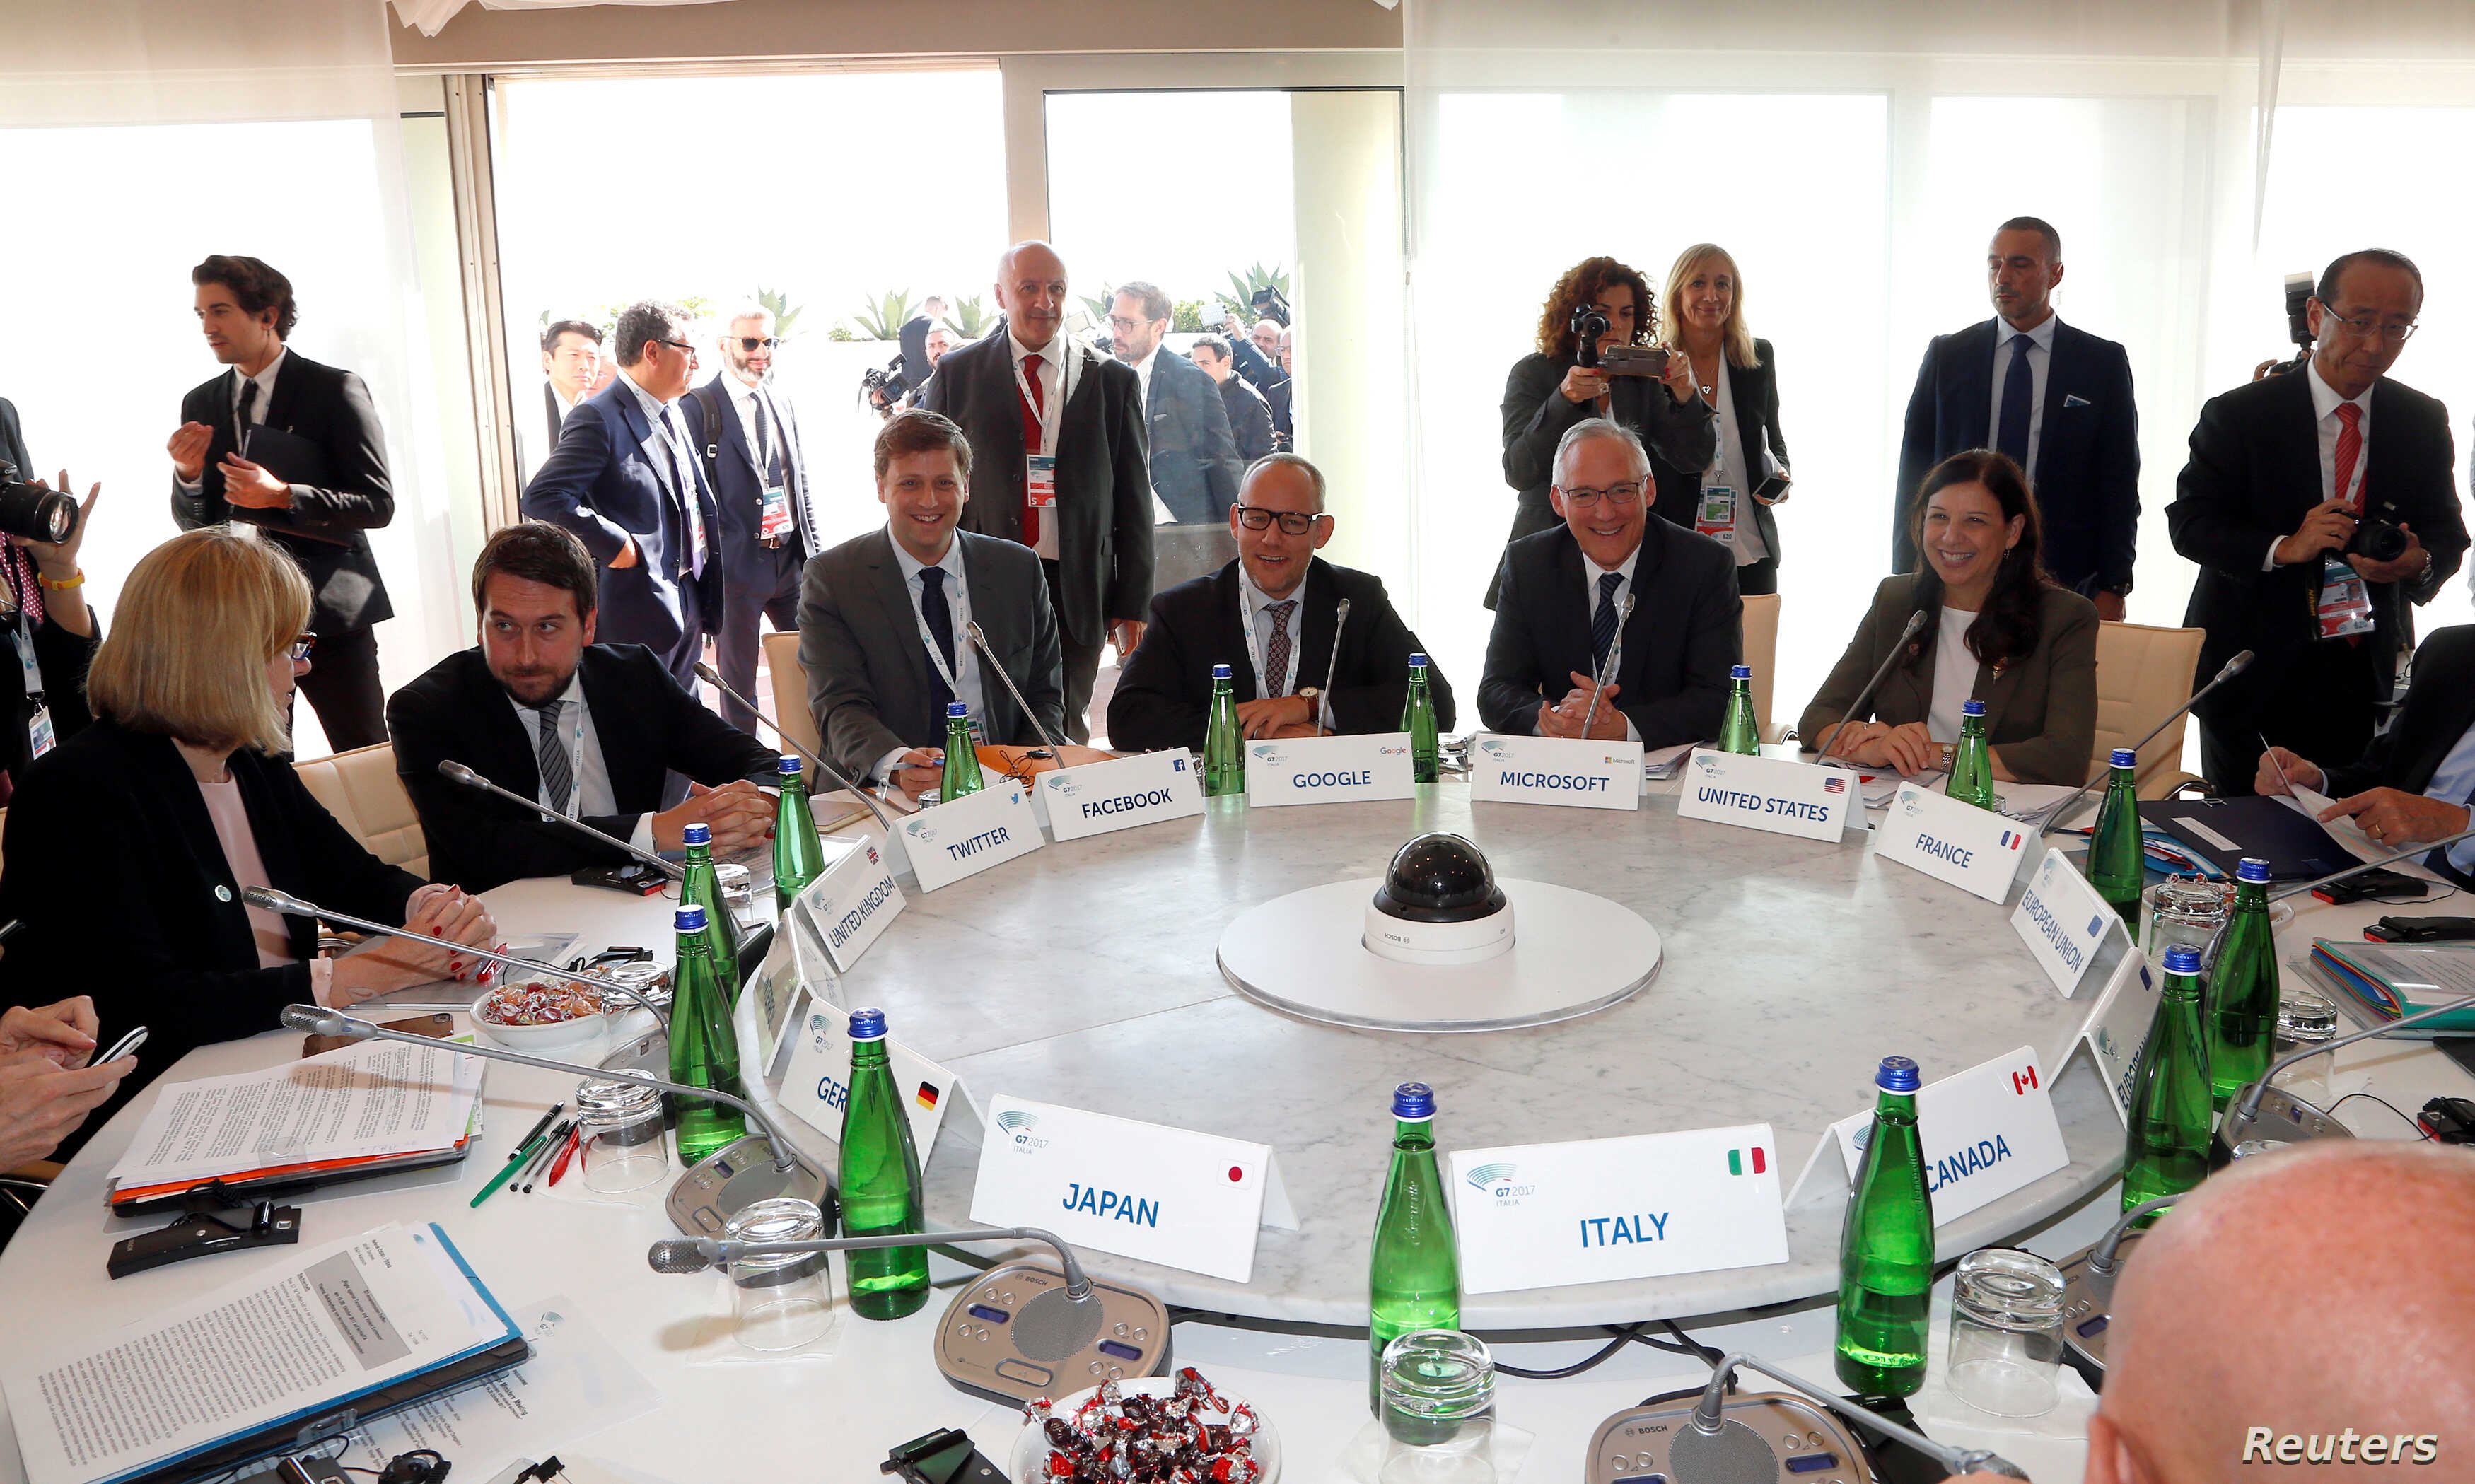 Representatives from Google, Microsoft, Facebook and Twitter met with G-7 interior ministers to discuss efforts in combating extremism on the internet during a Group of Seven meeting in Italy, Oct. 20, 2017.